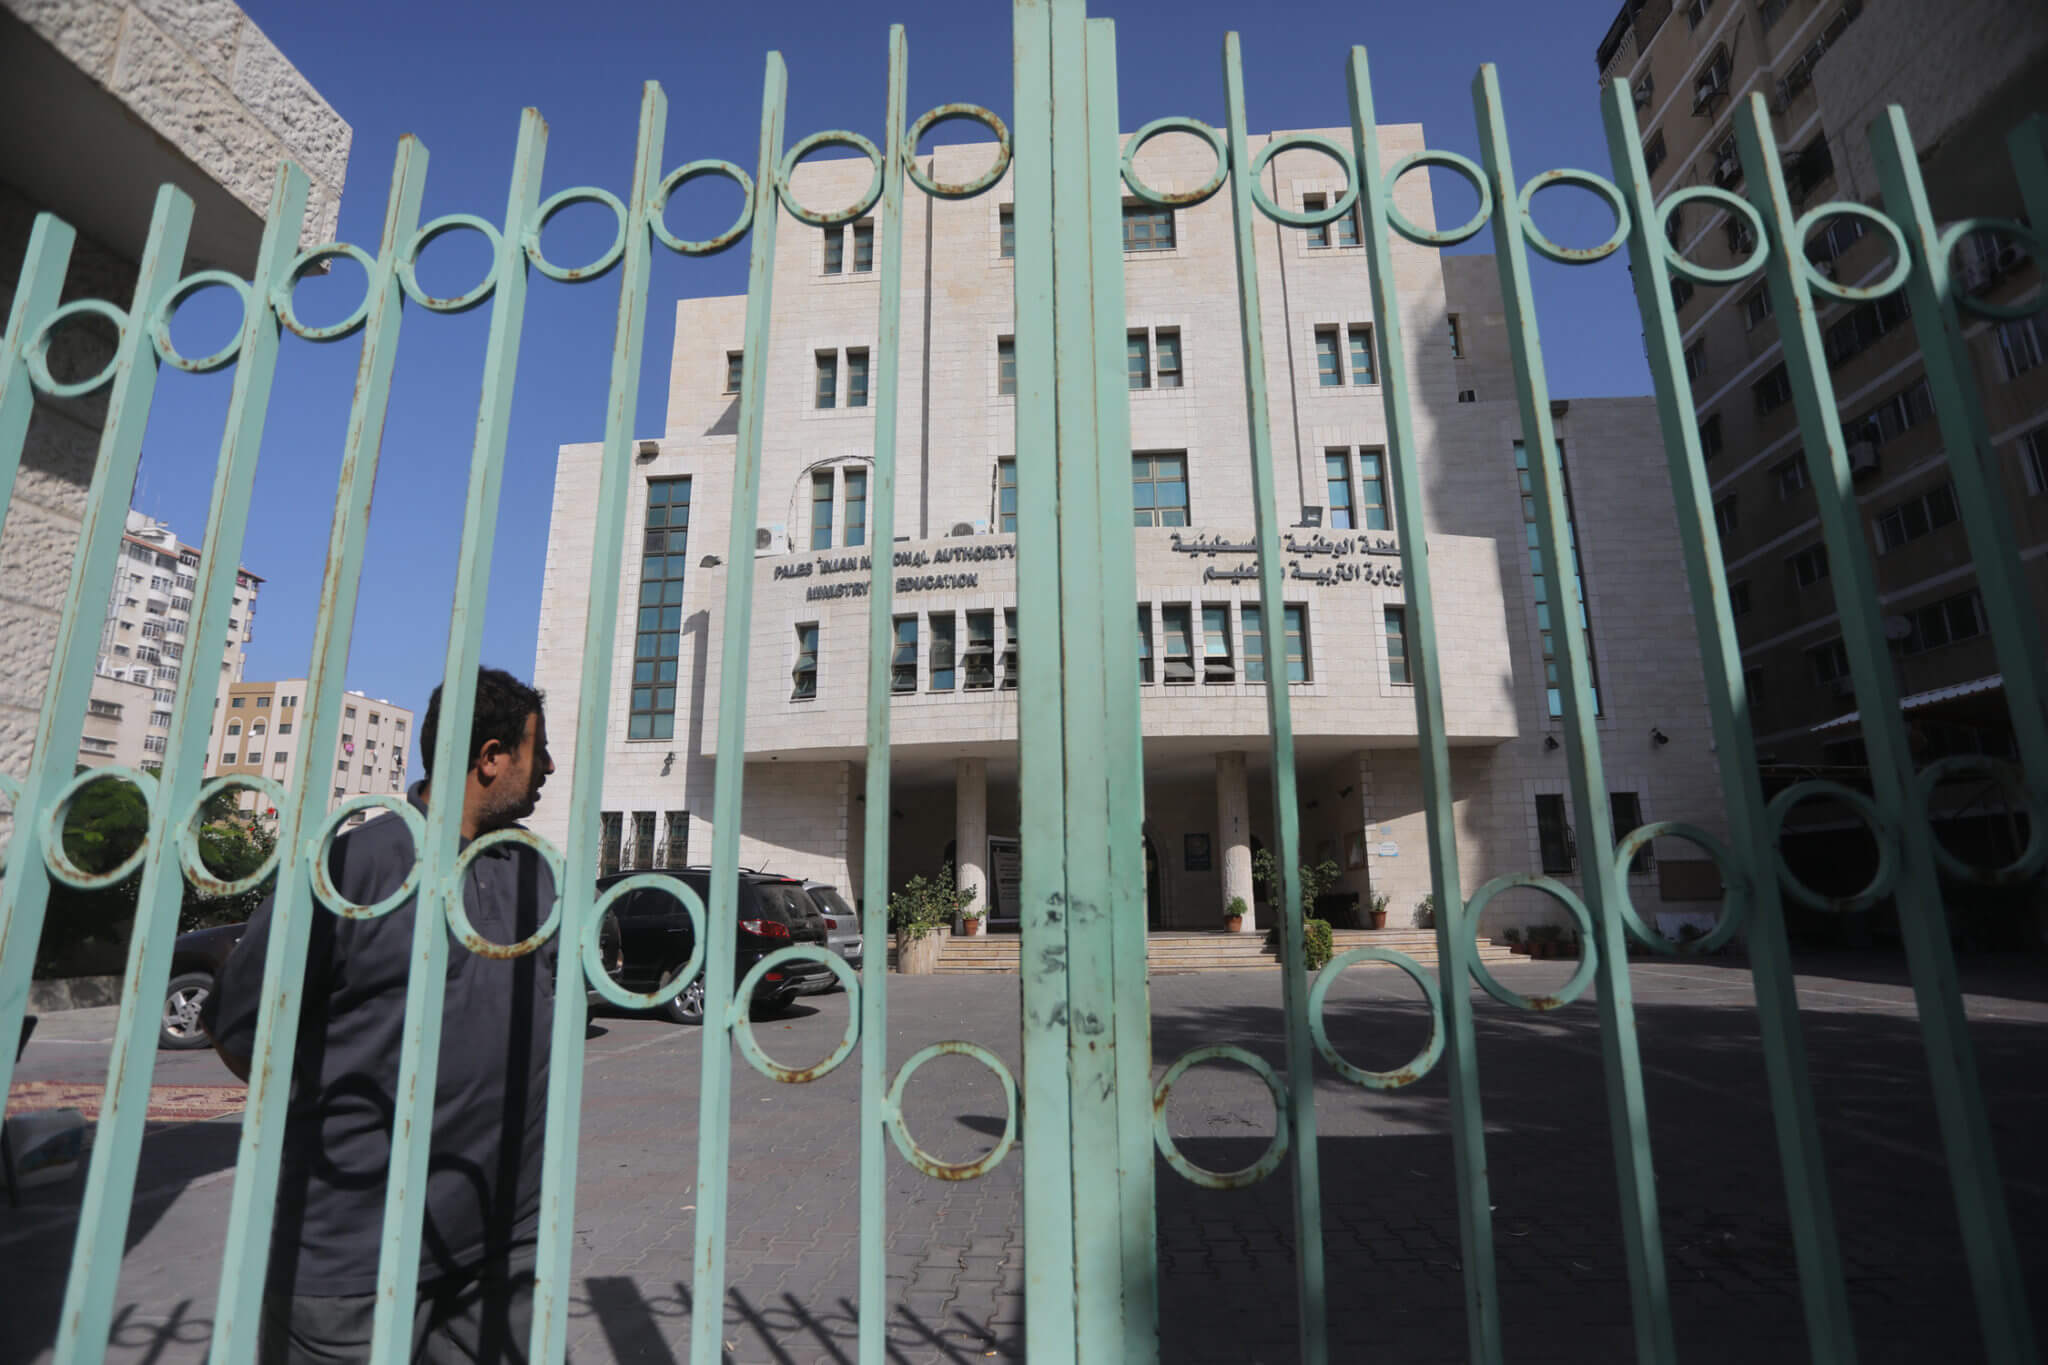 All government ministries and headquarters are closed in Gaza except the Ministry of Health